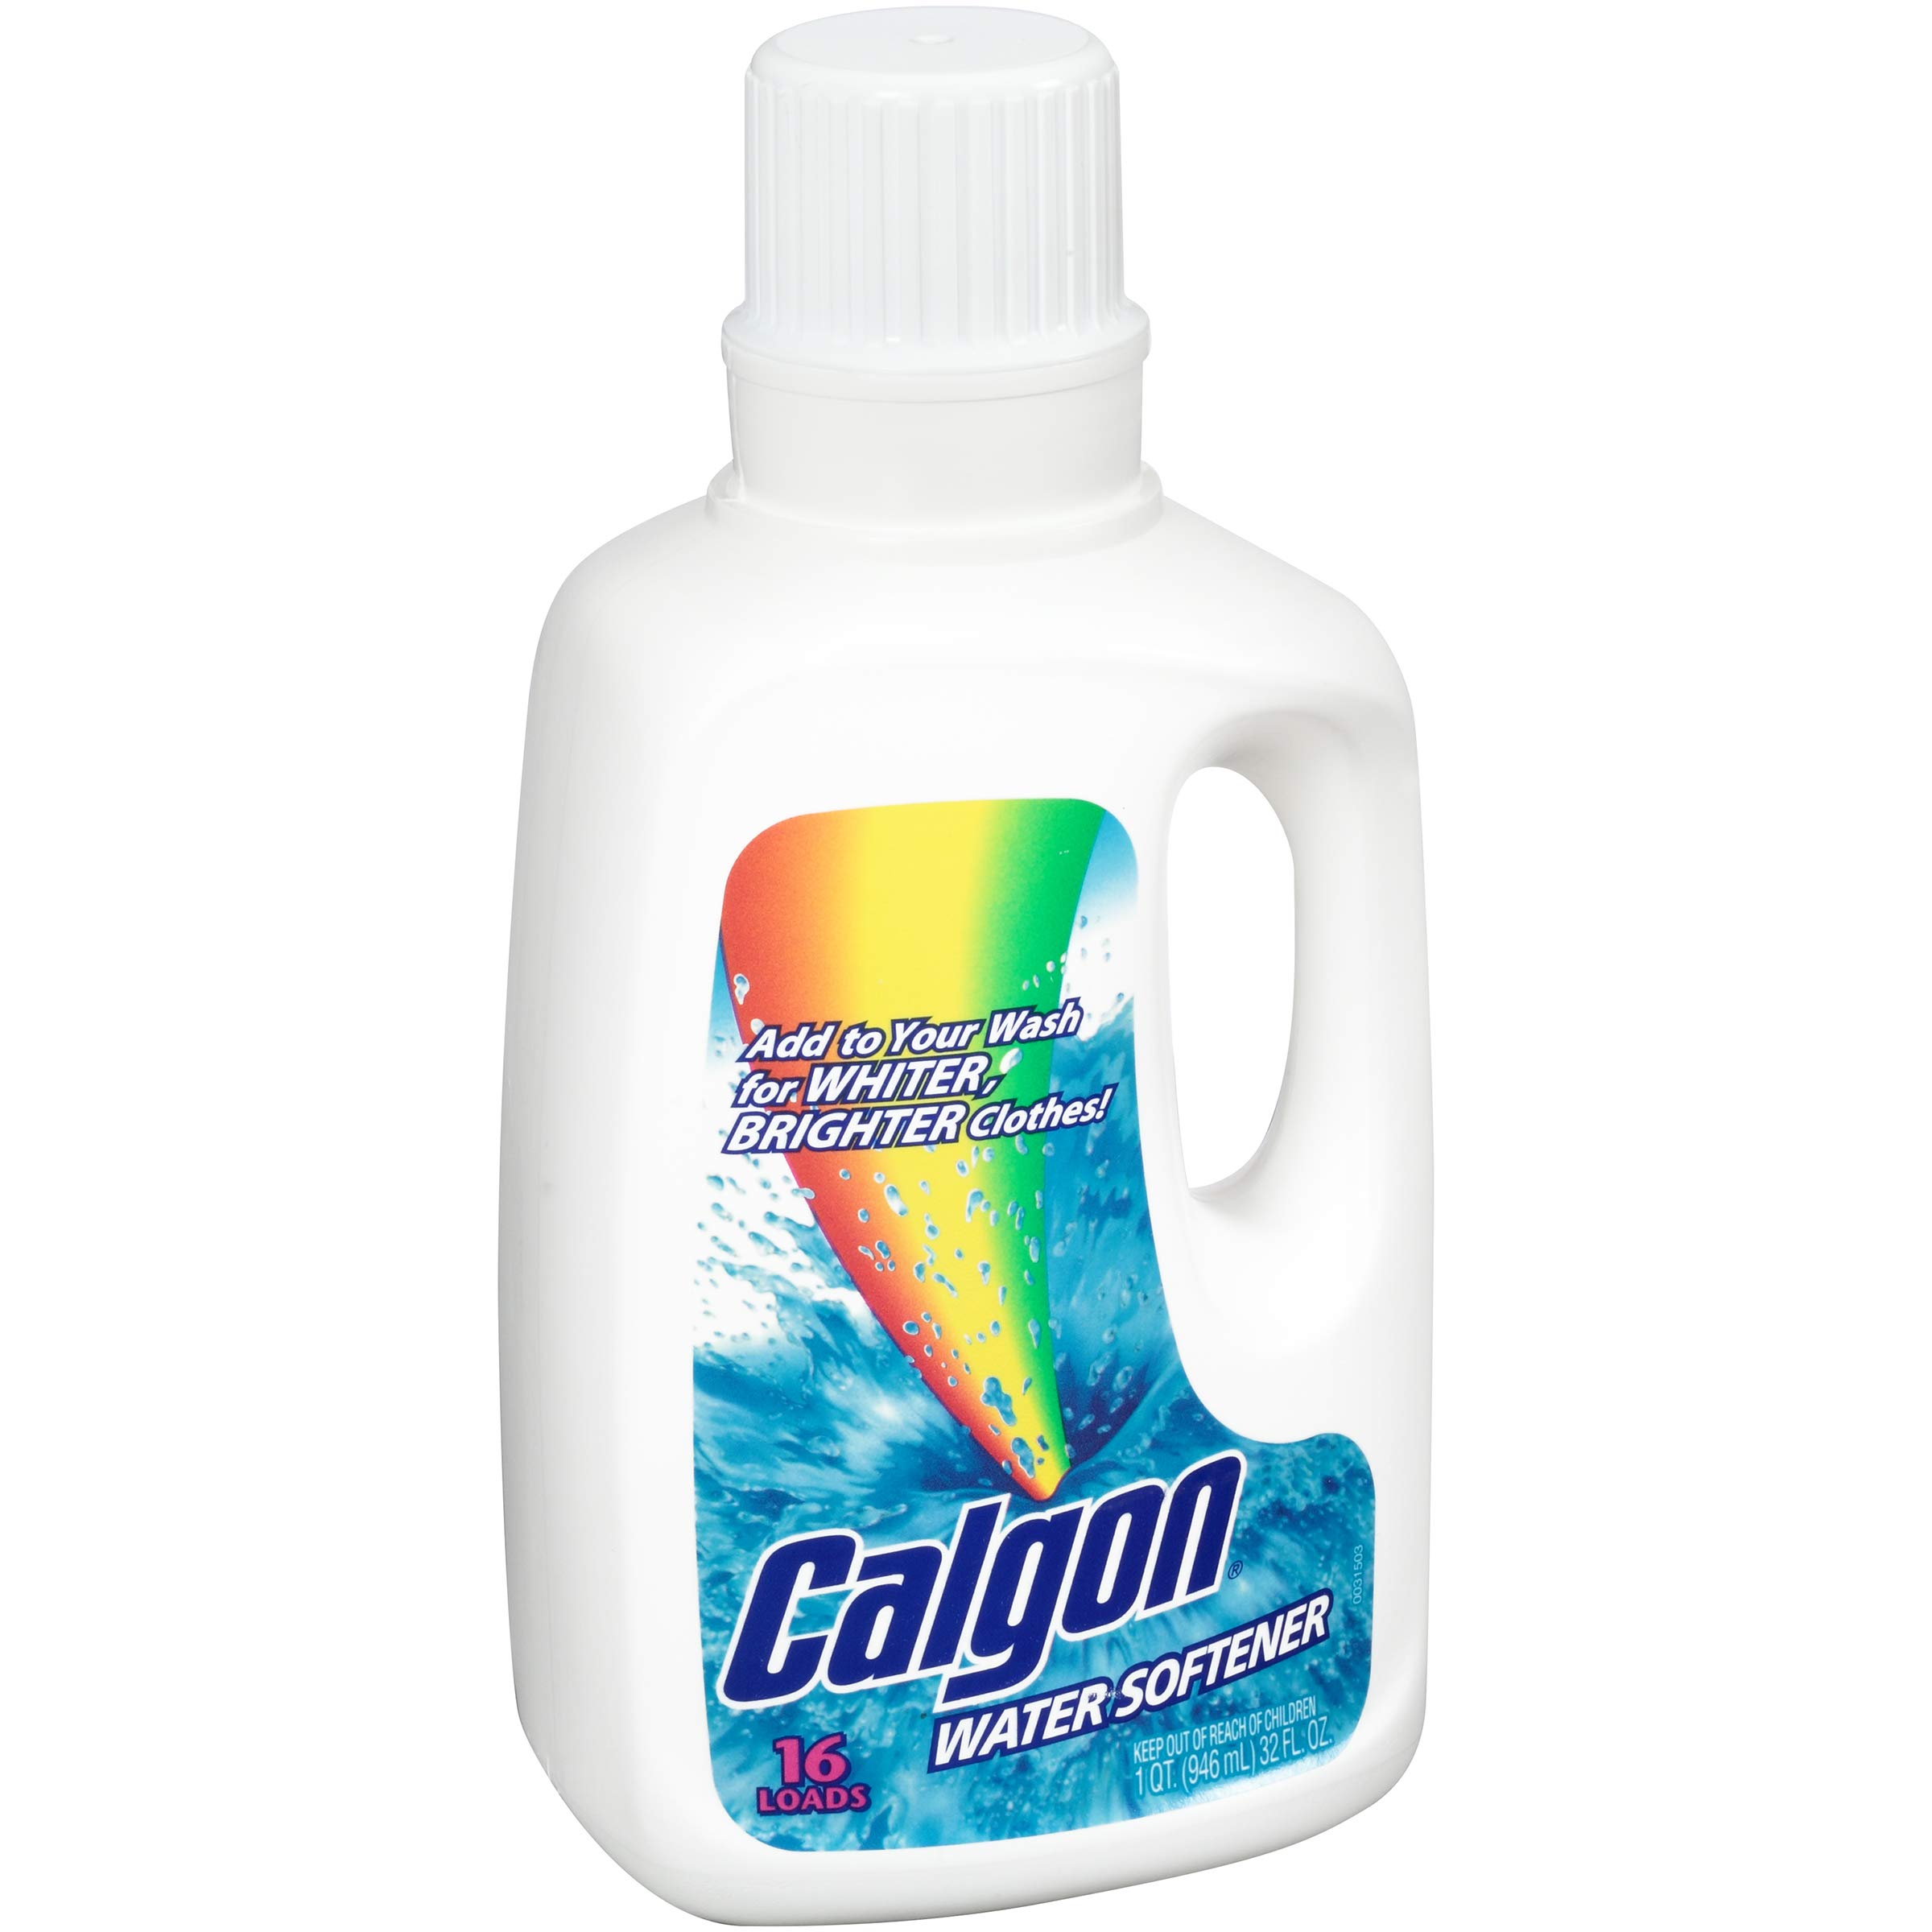 Calgon Liquid Water Softener, 32 Ounce (Pack of 6)